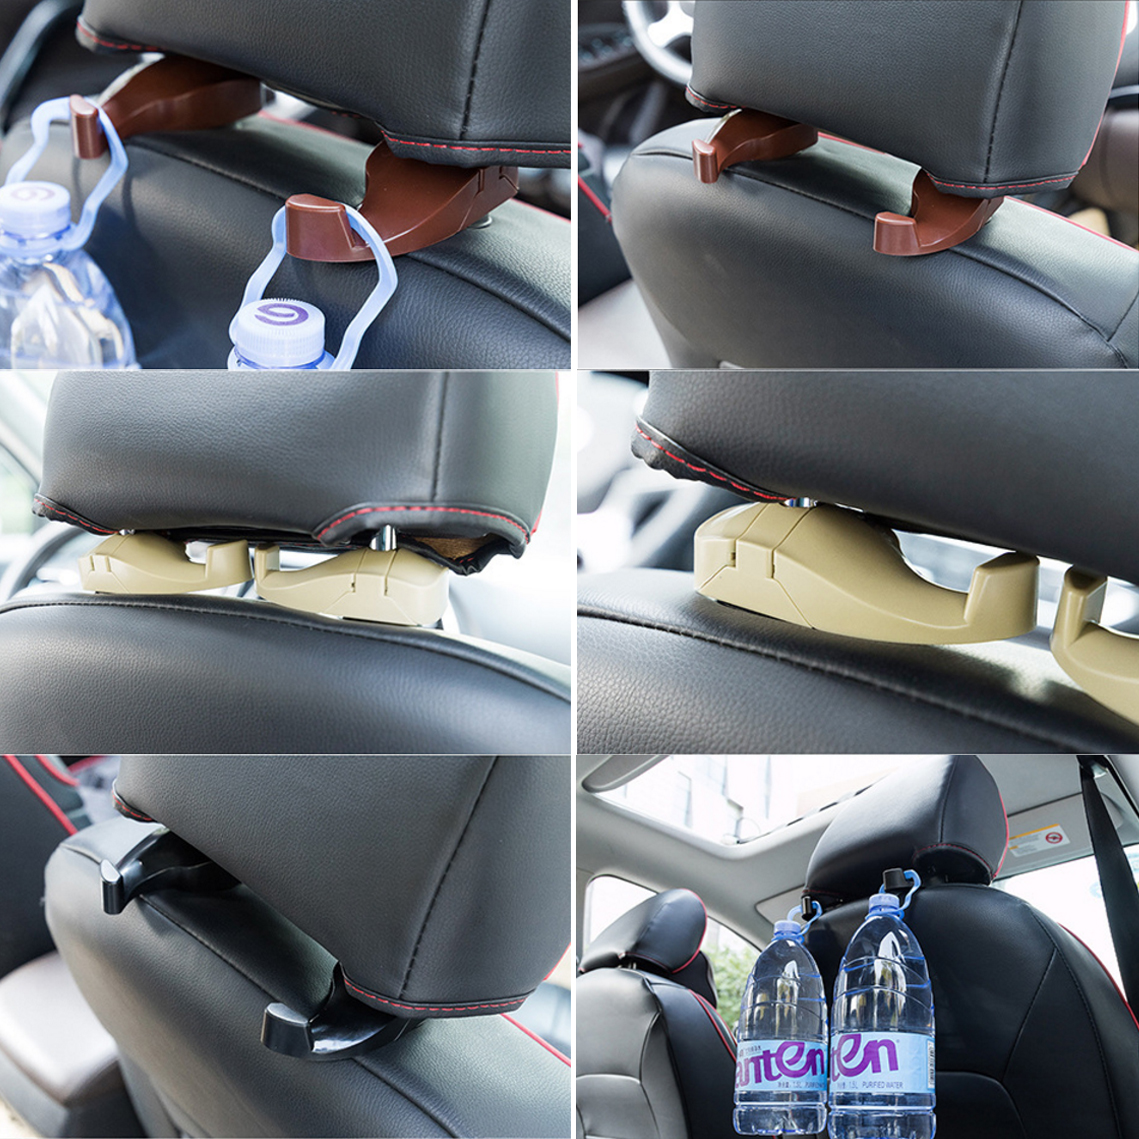 Easy to install car seat hook hanger holder bags purse